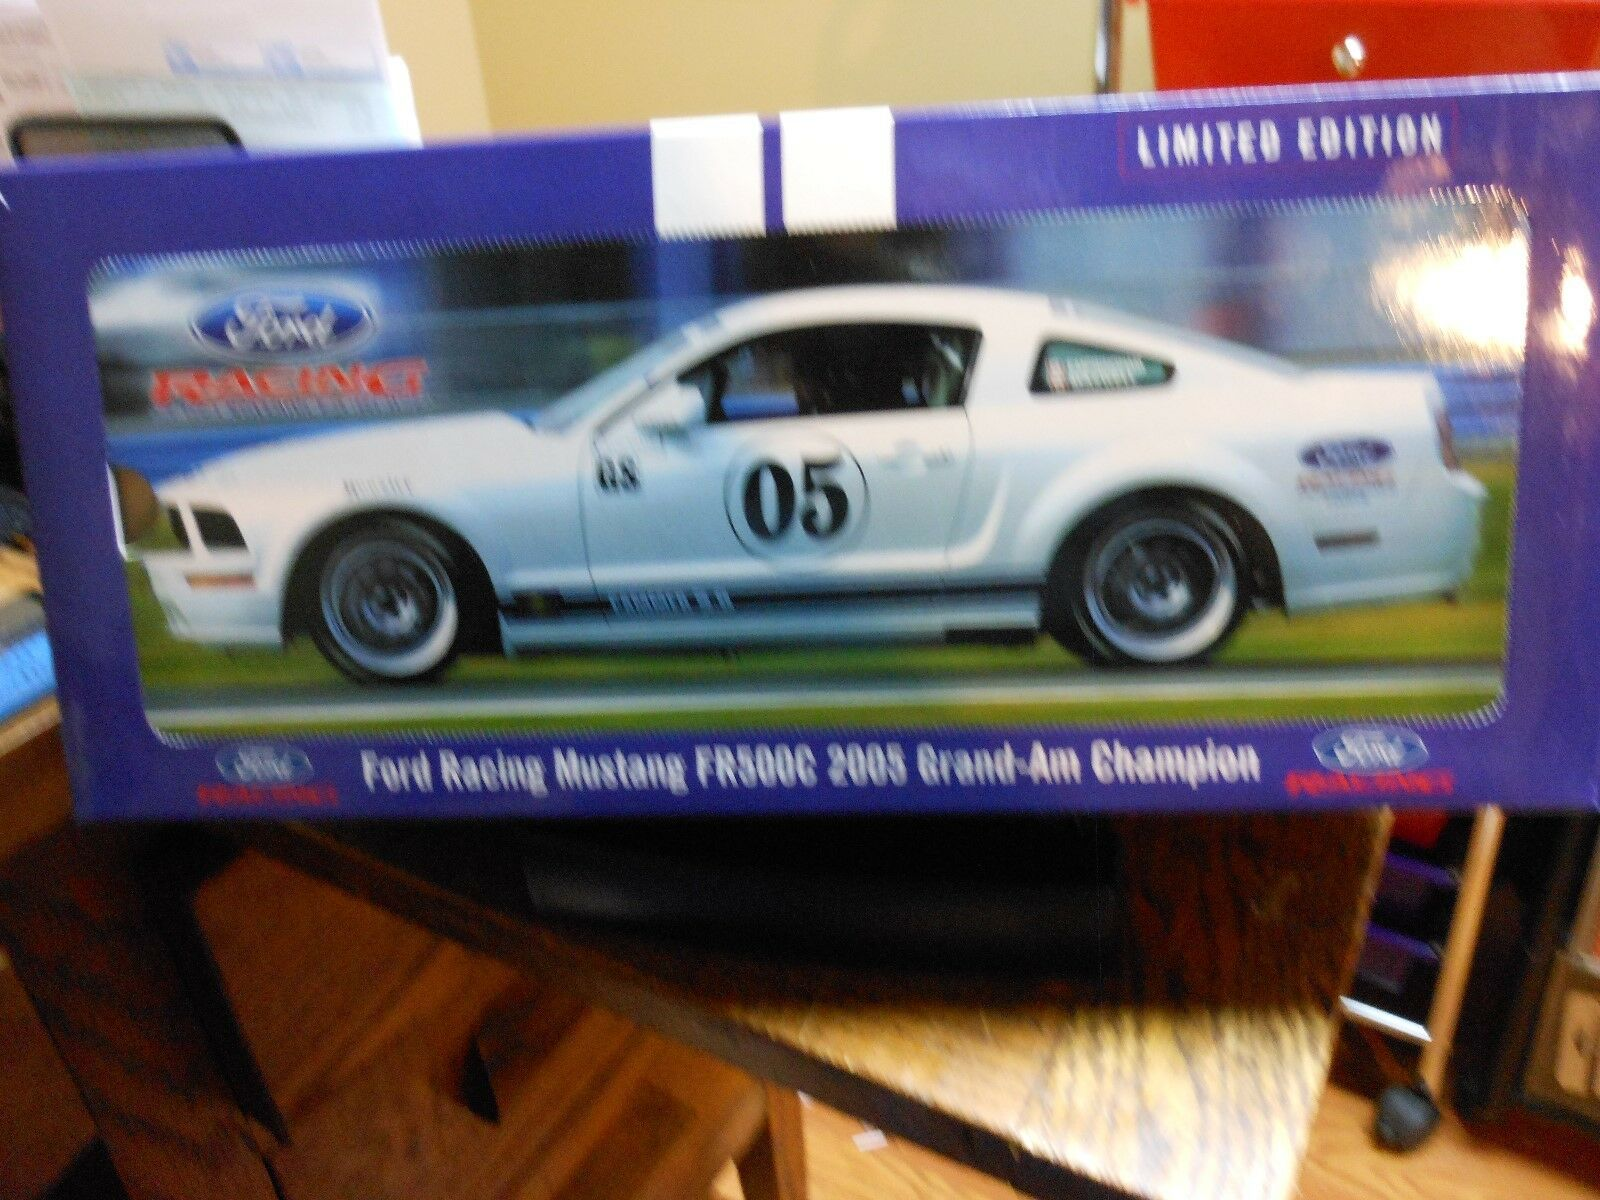 2005 FORD RACING MUSTANG FR 500C GRAND-AM CHAMPION  BY AUTO ART--1 18 SCALE-NEW